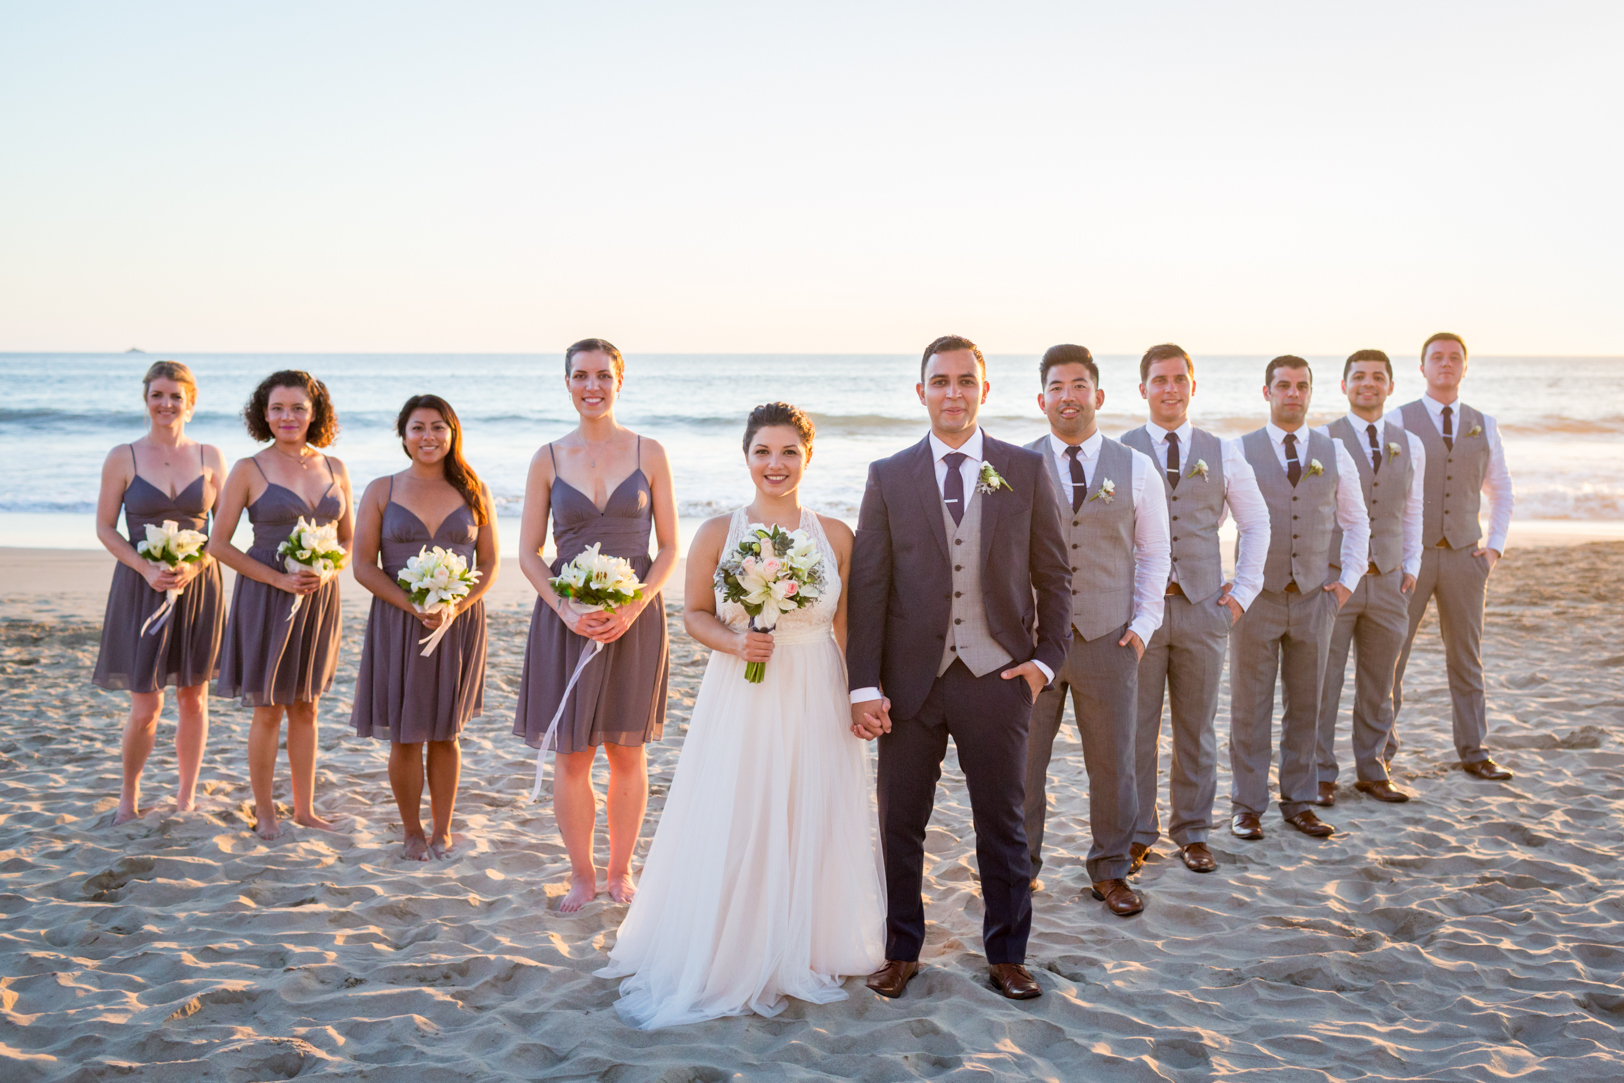 Bridal party portrait at Sunscape Dorado Pacifico Ixtapa destination wedding